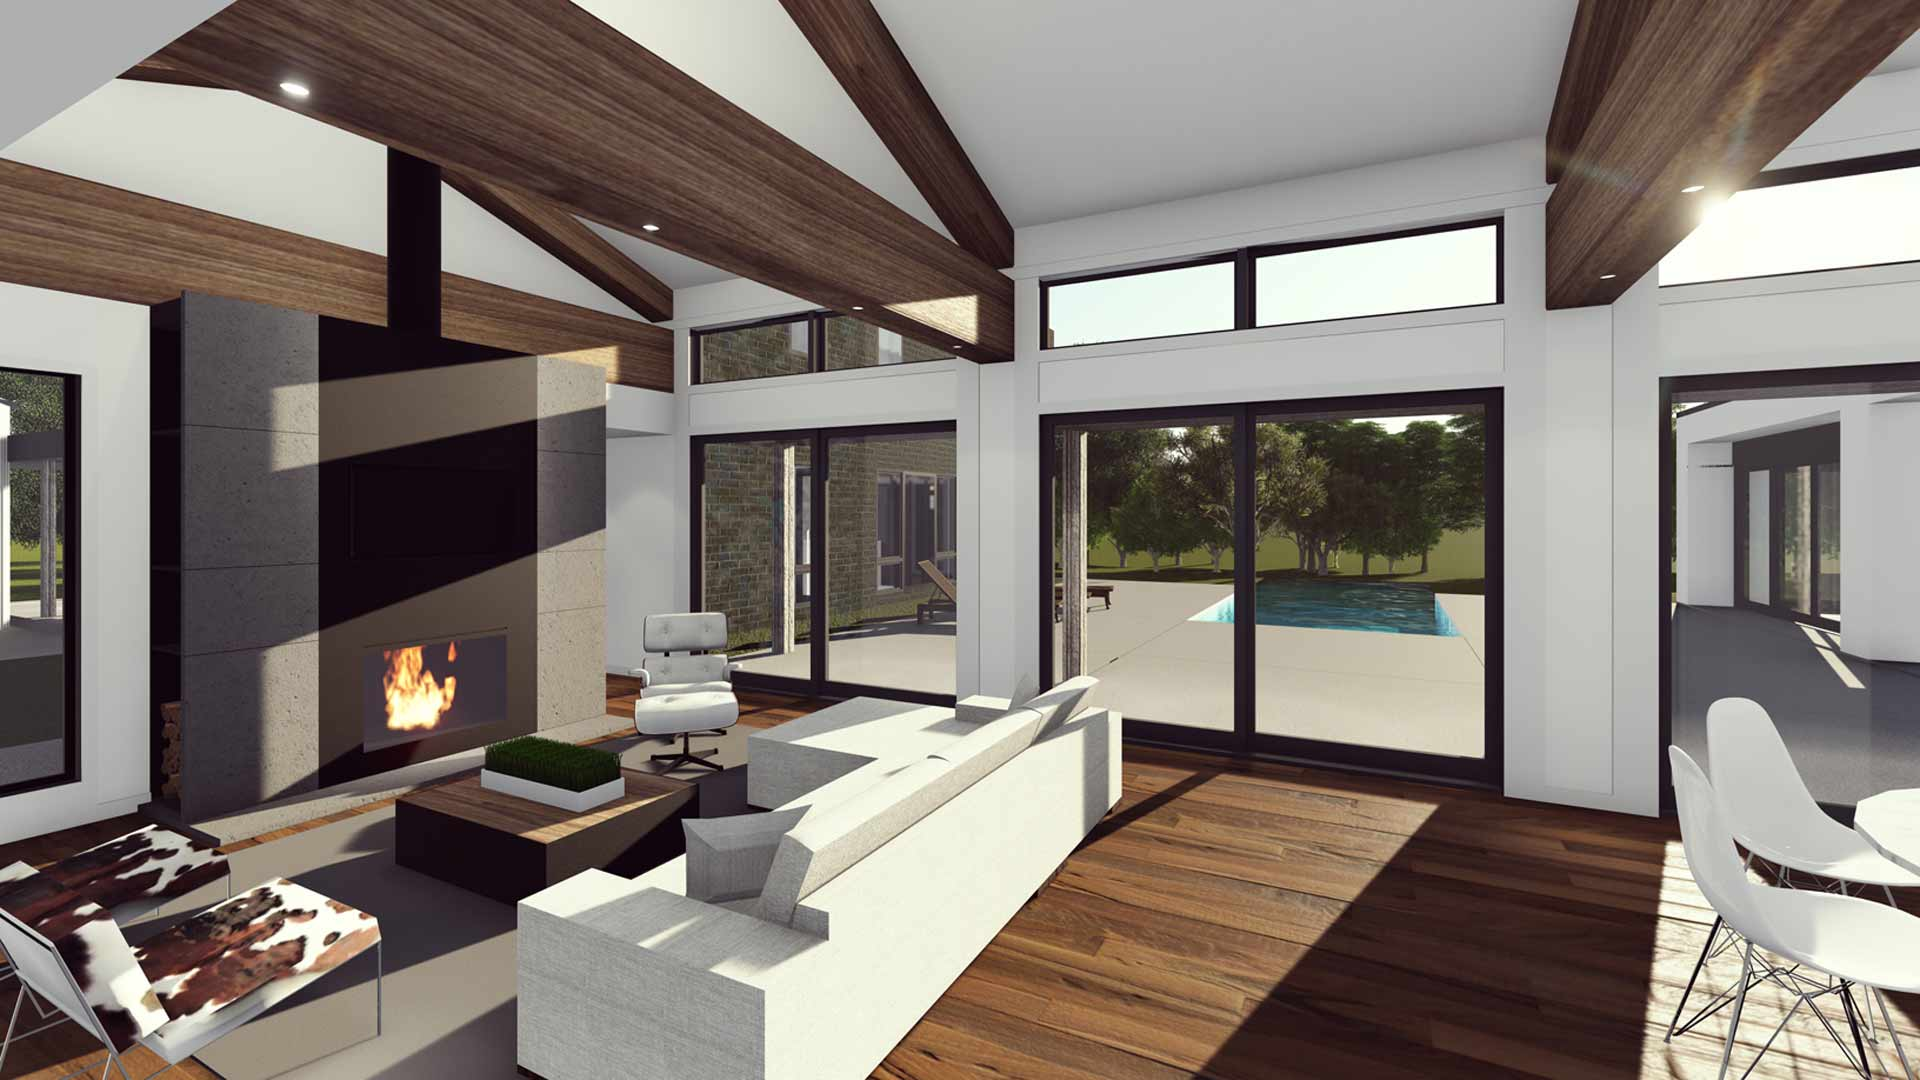 New Modern House Ditch - Interior Rendering - HAUS Architecture, Christopher Short, Indianapolis Architect